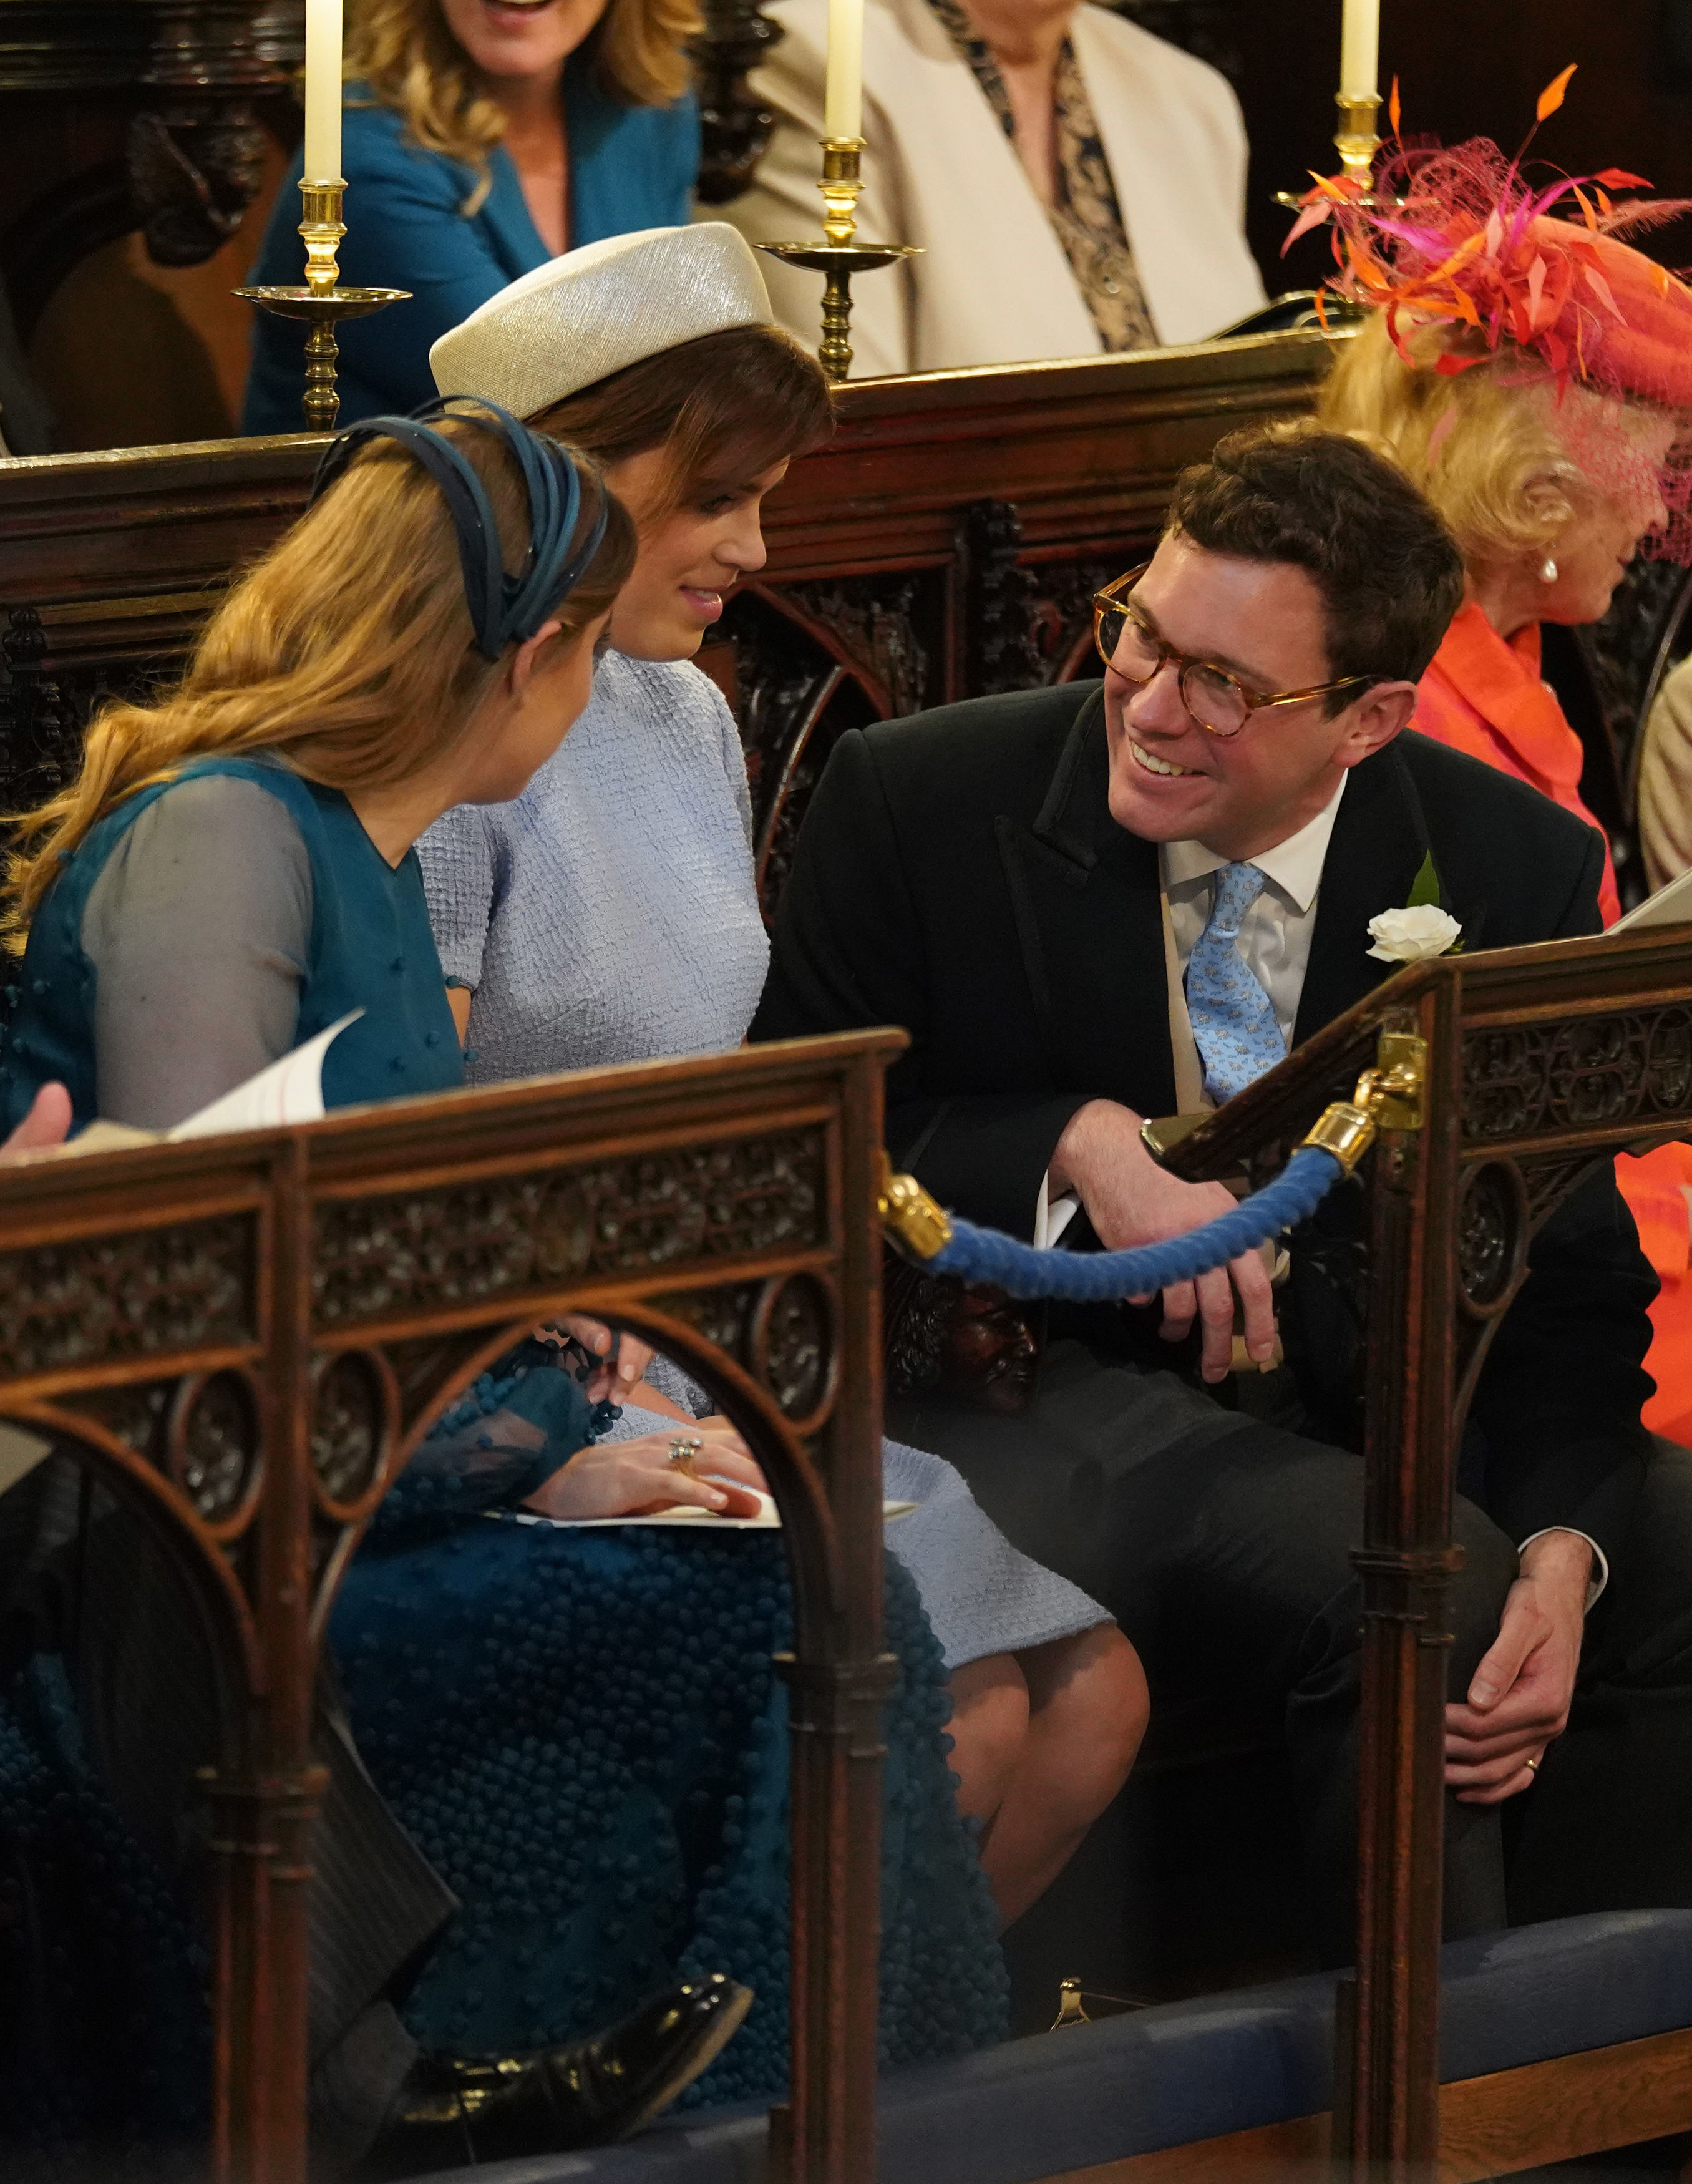 (L-R) Princess Beatrice (left), Princess Eugenie and Jack Brooksbank take their seats at St George's Chapel at Windsor Castle before the wedding of Prince Harry to Meghan Markle on May 19, 2018 in Windsor, England.